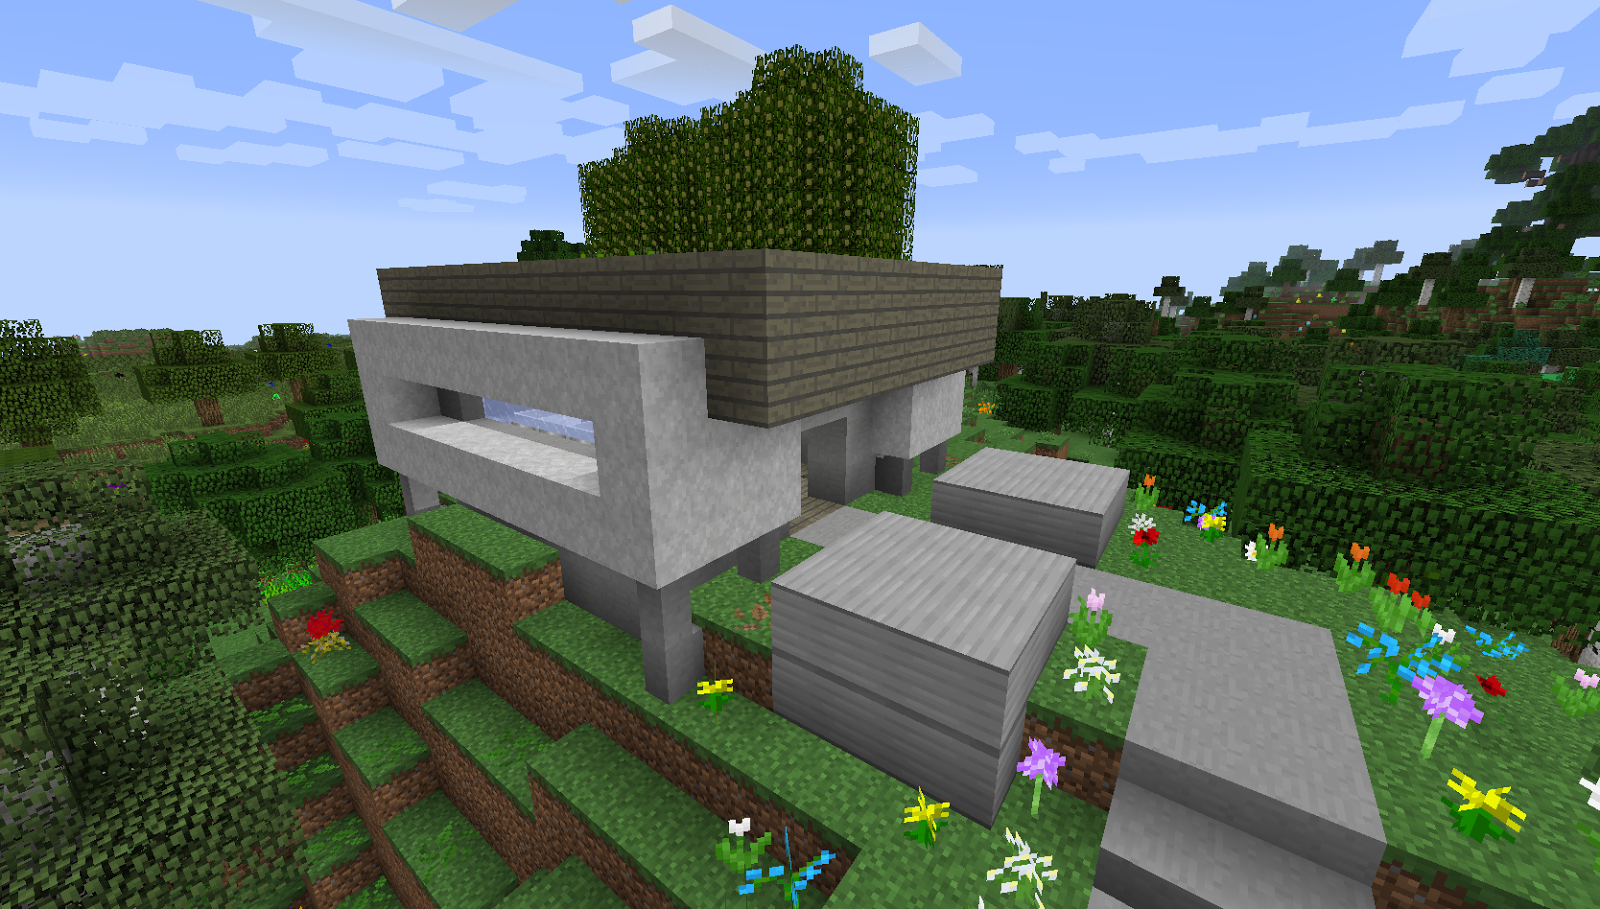 Modjo Minecraft: Binnie's Mods- Bees, Trees and Genetics